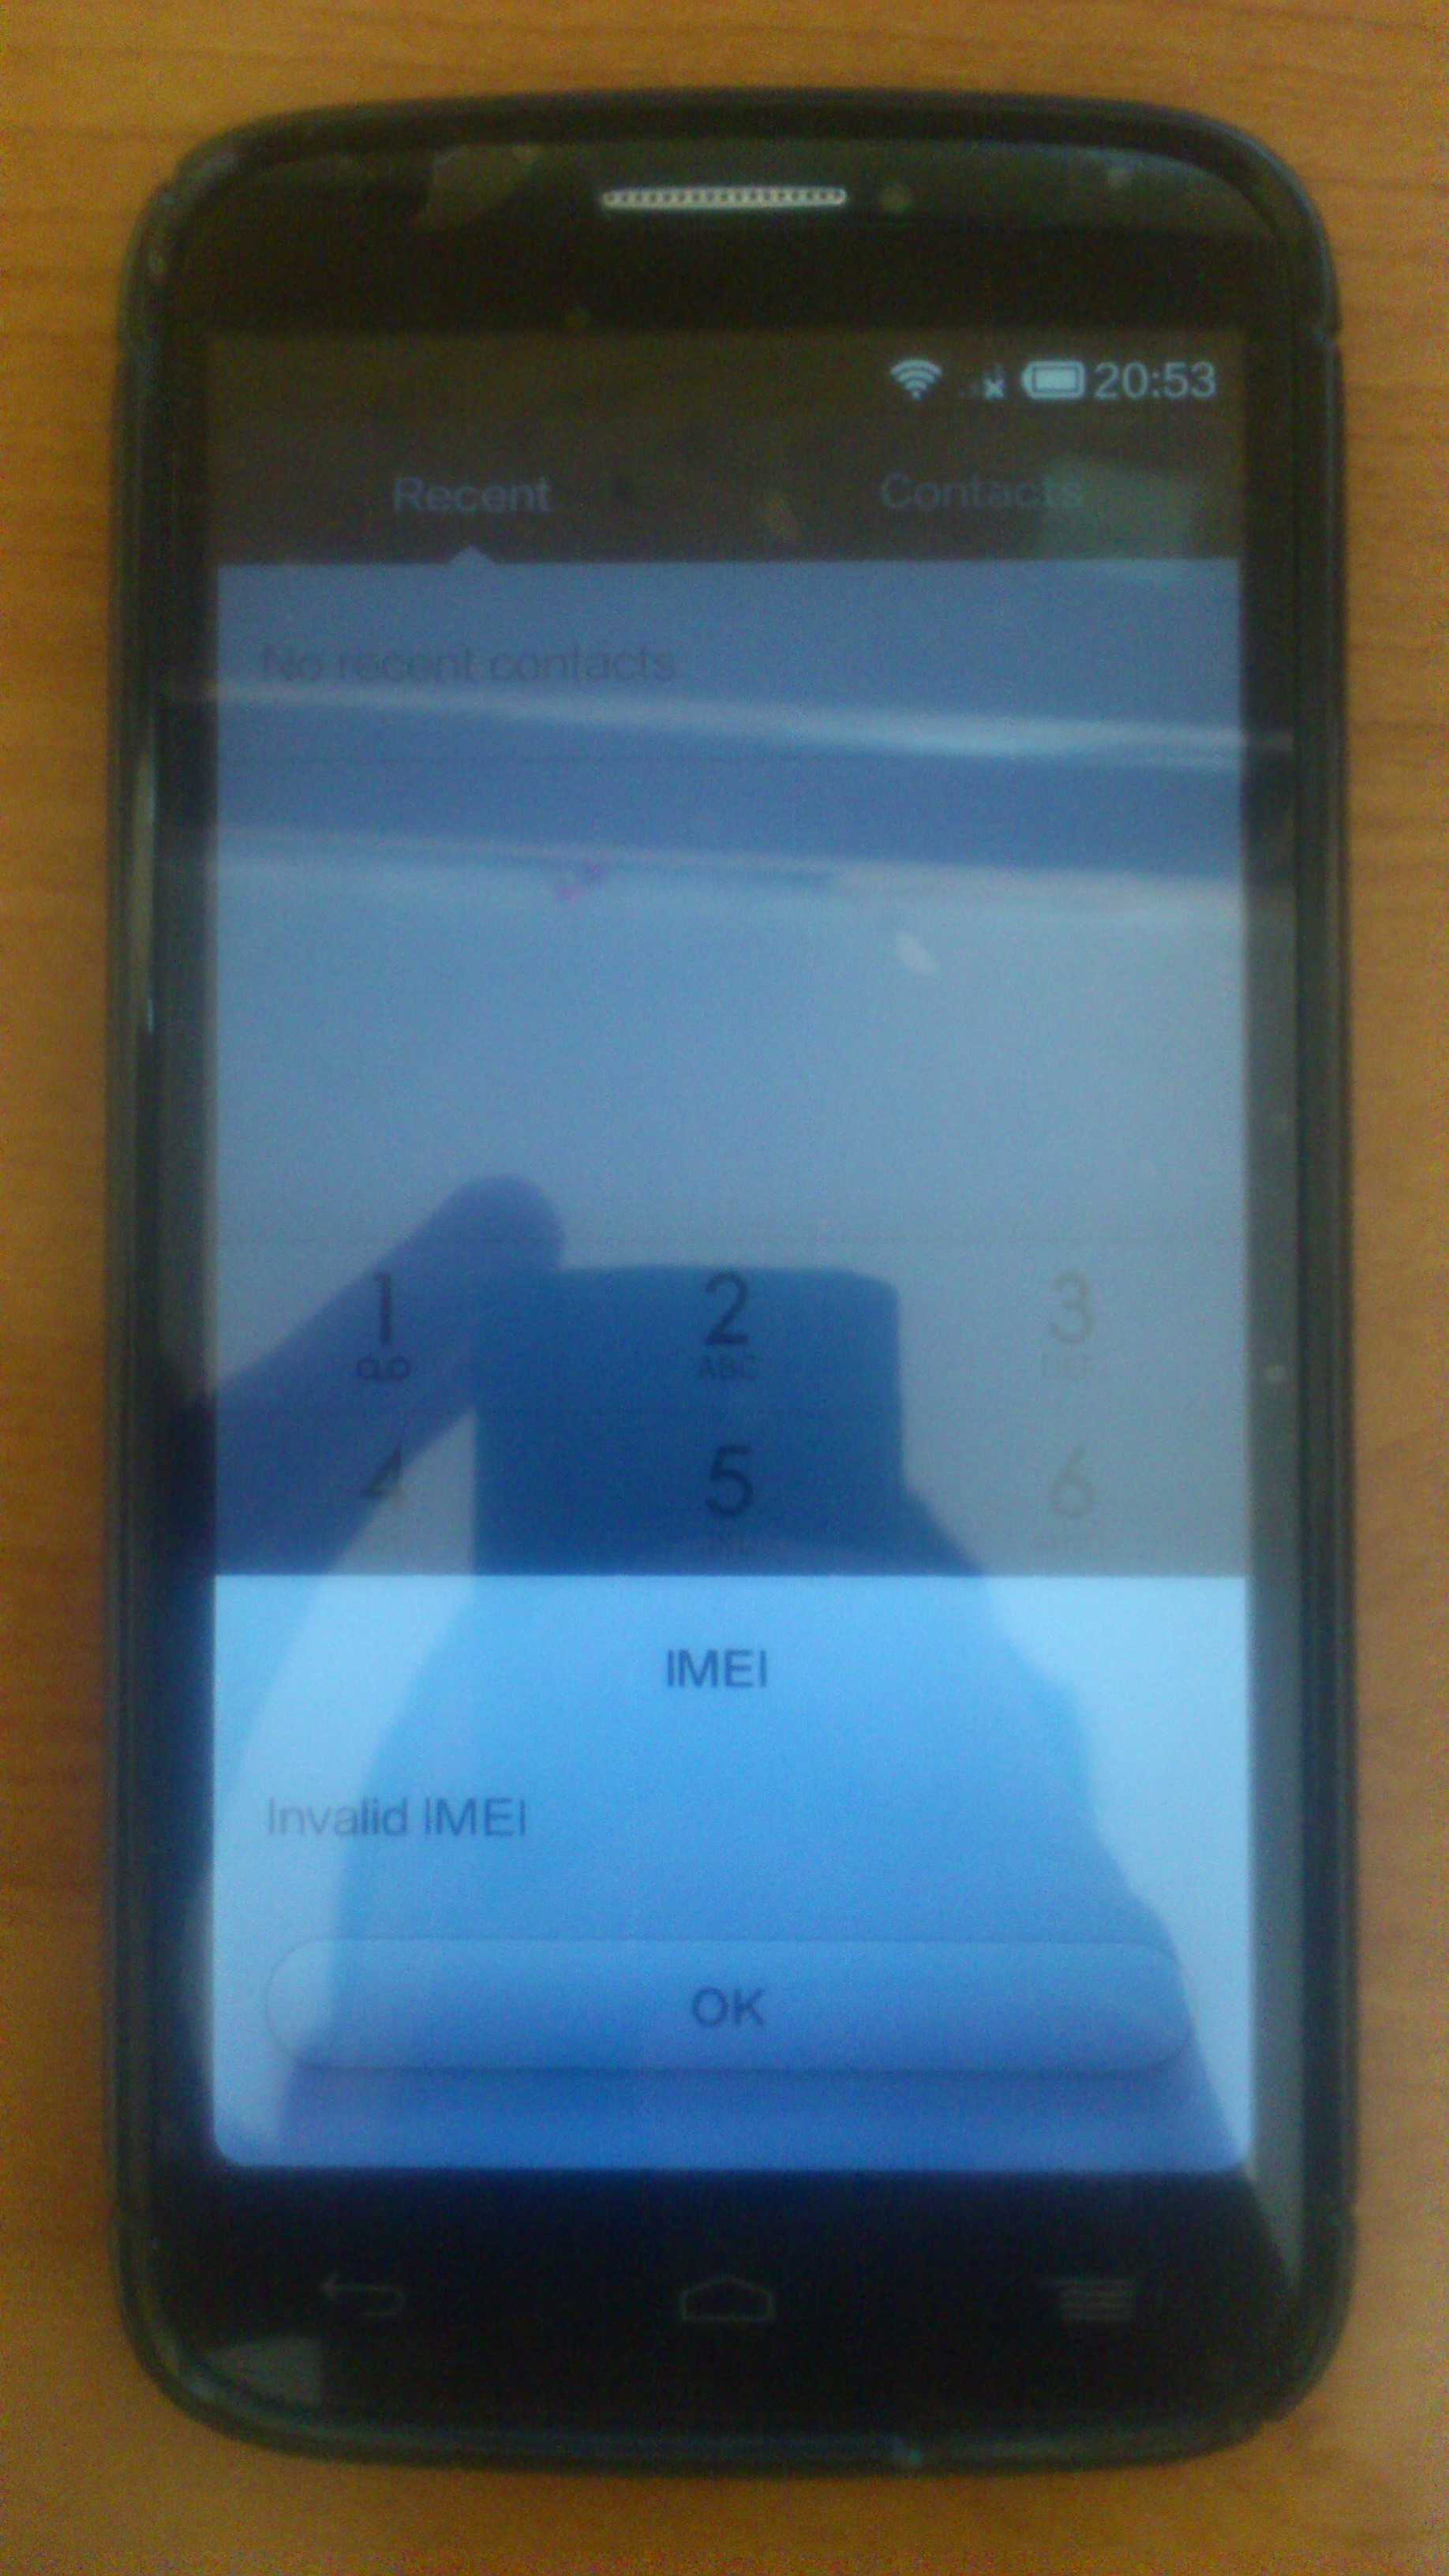 Invalid IMEI on MTK6582 - Porting Team - Xiaomi MIUI Official Forum